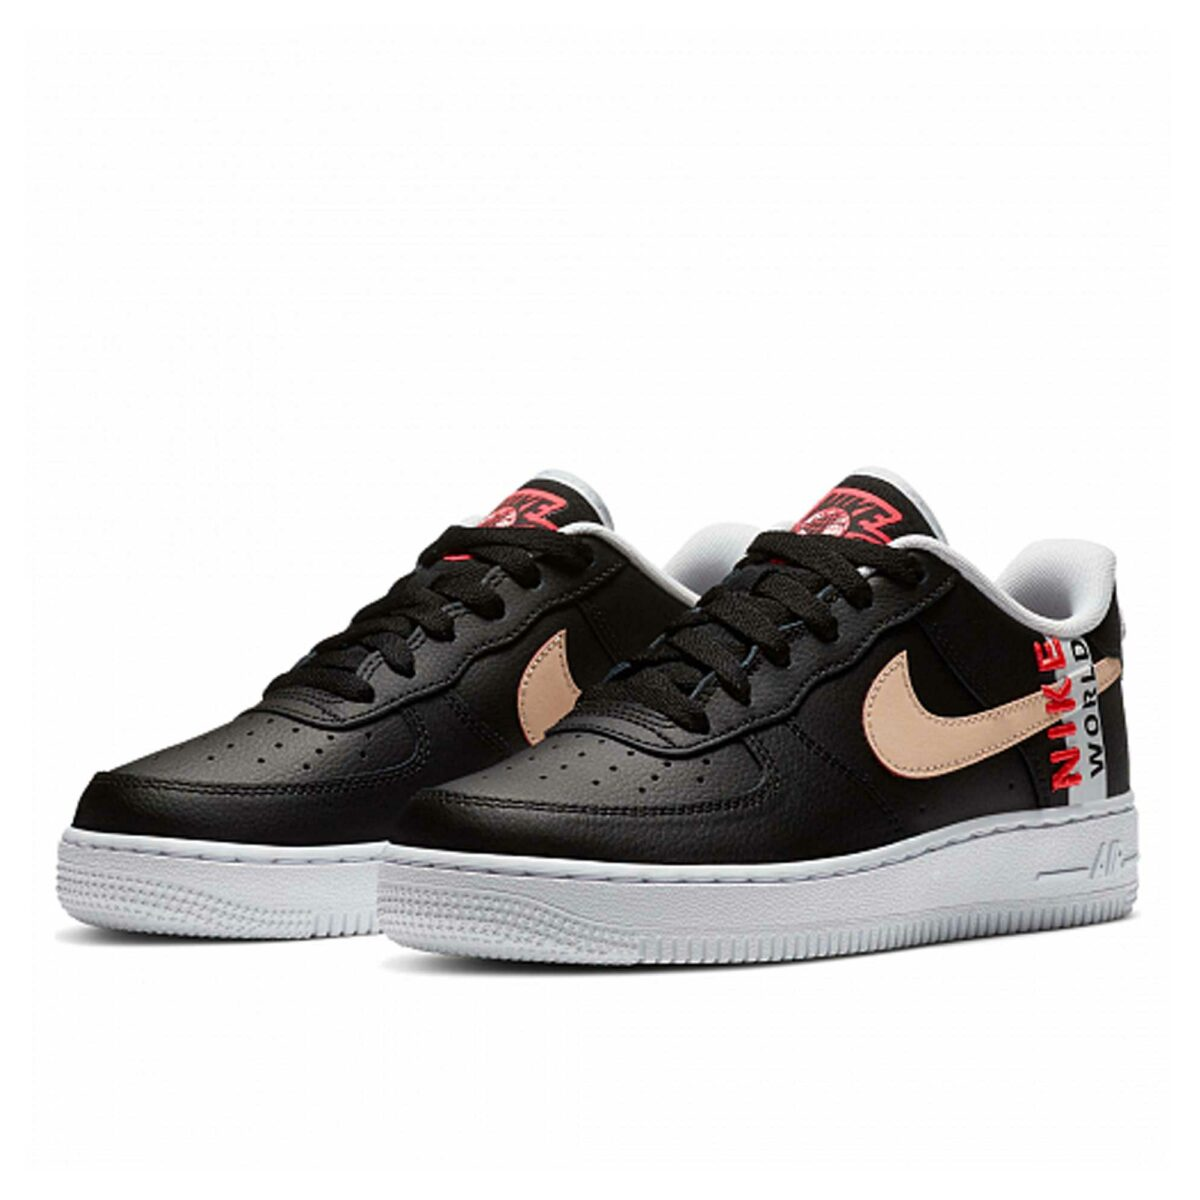 nike air force 1 lv8 worldwide black crimson white cn8536_001 купить